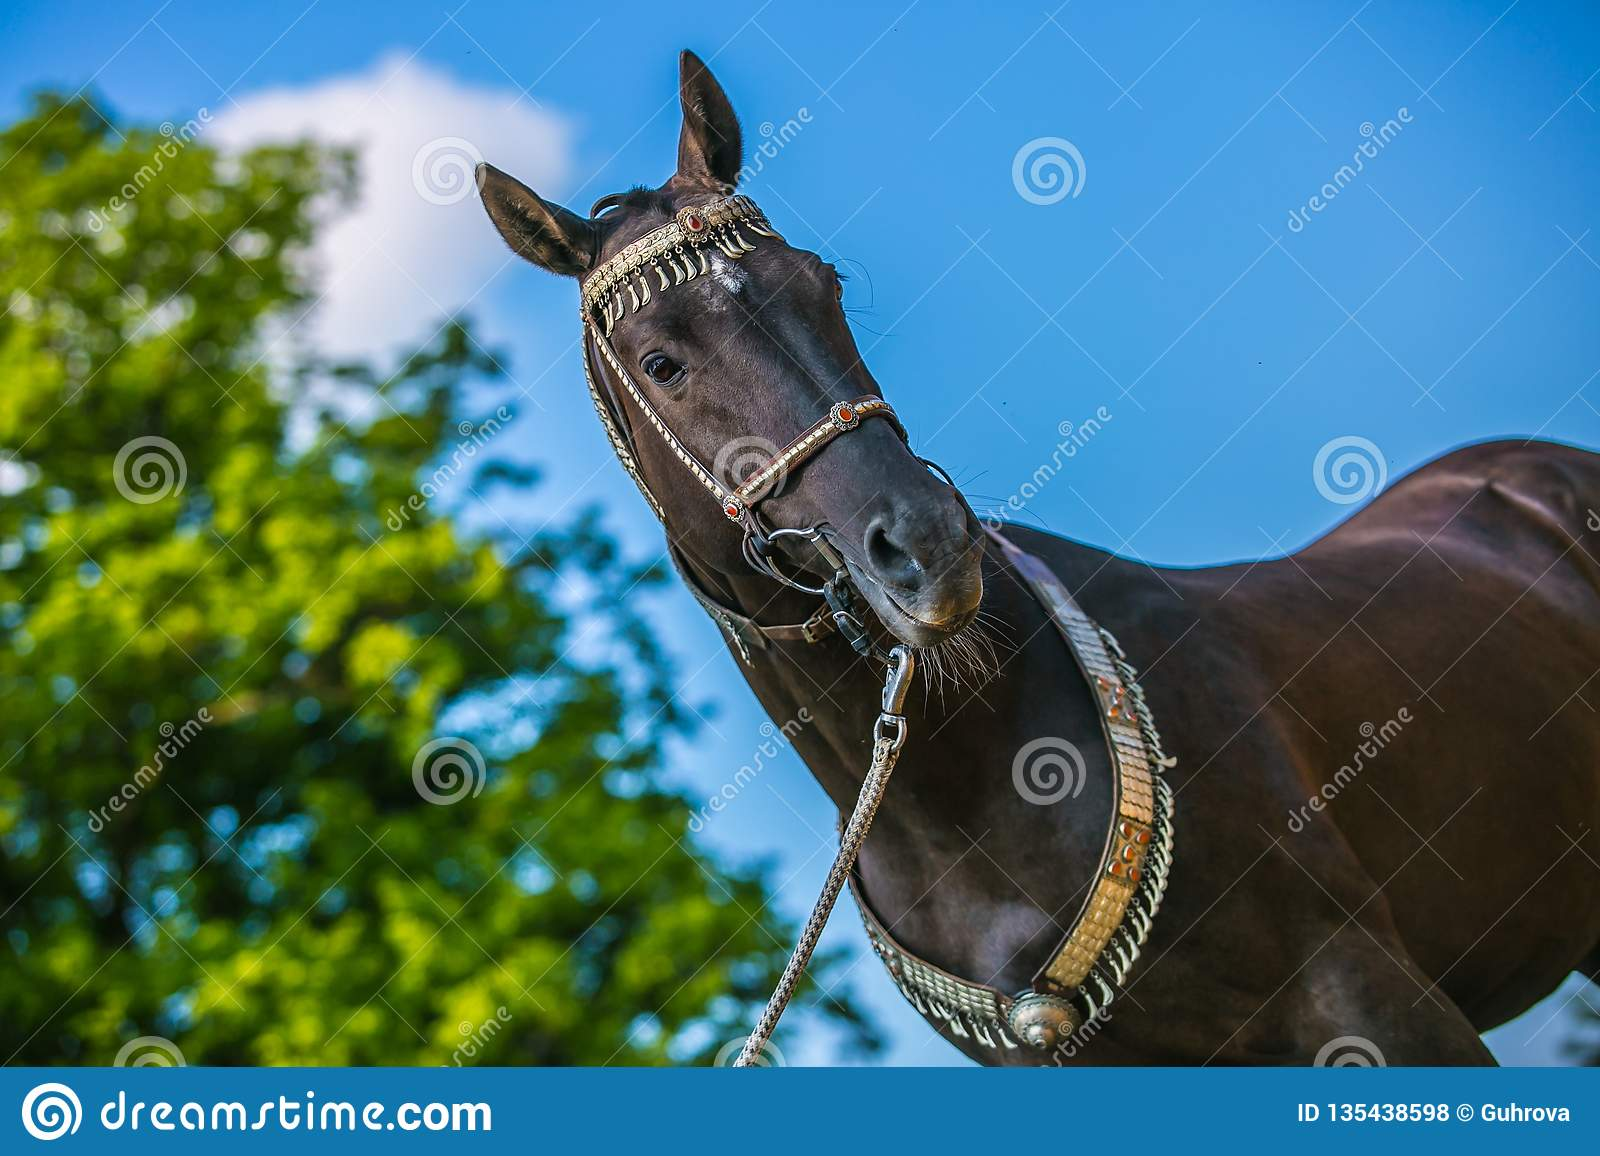 Graceful dark brown akhal teke horse standing outdoors on a sunny day